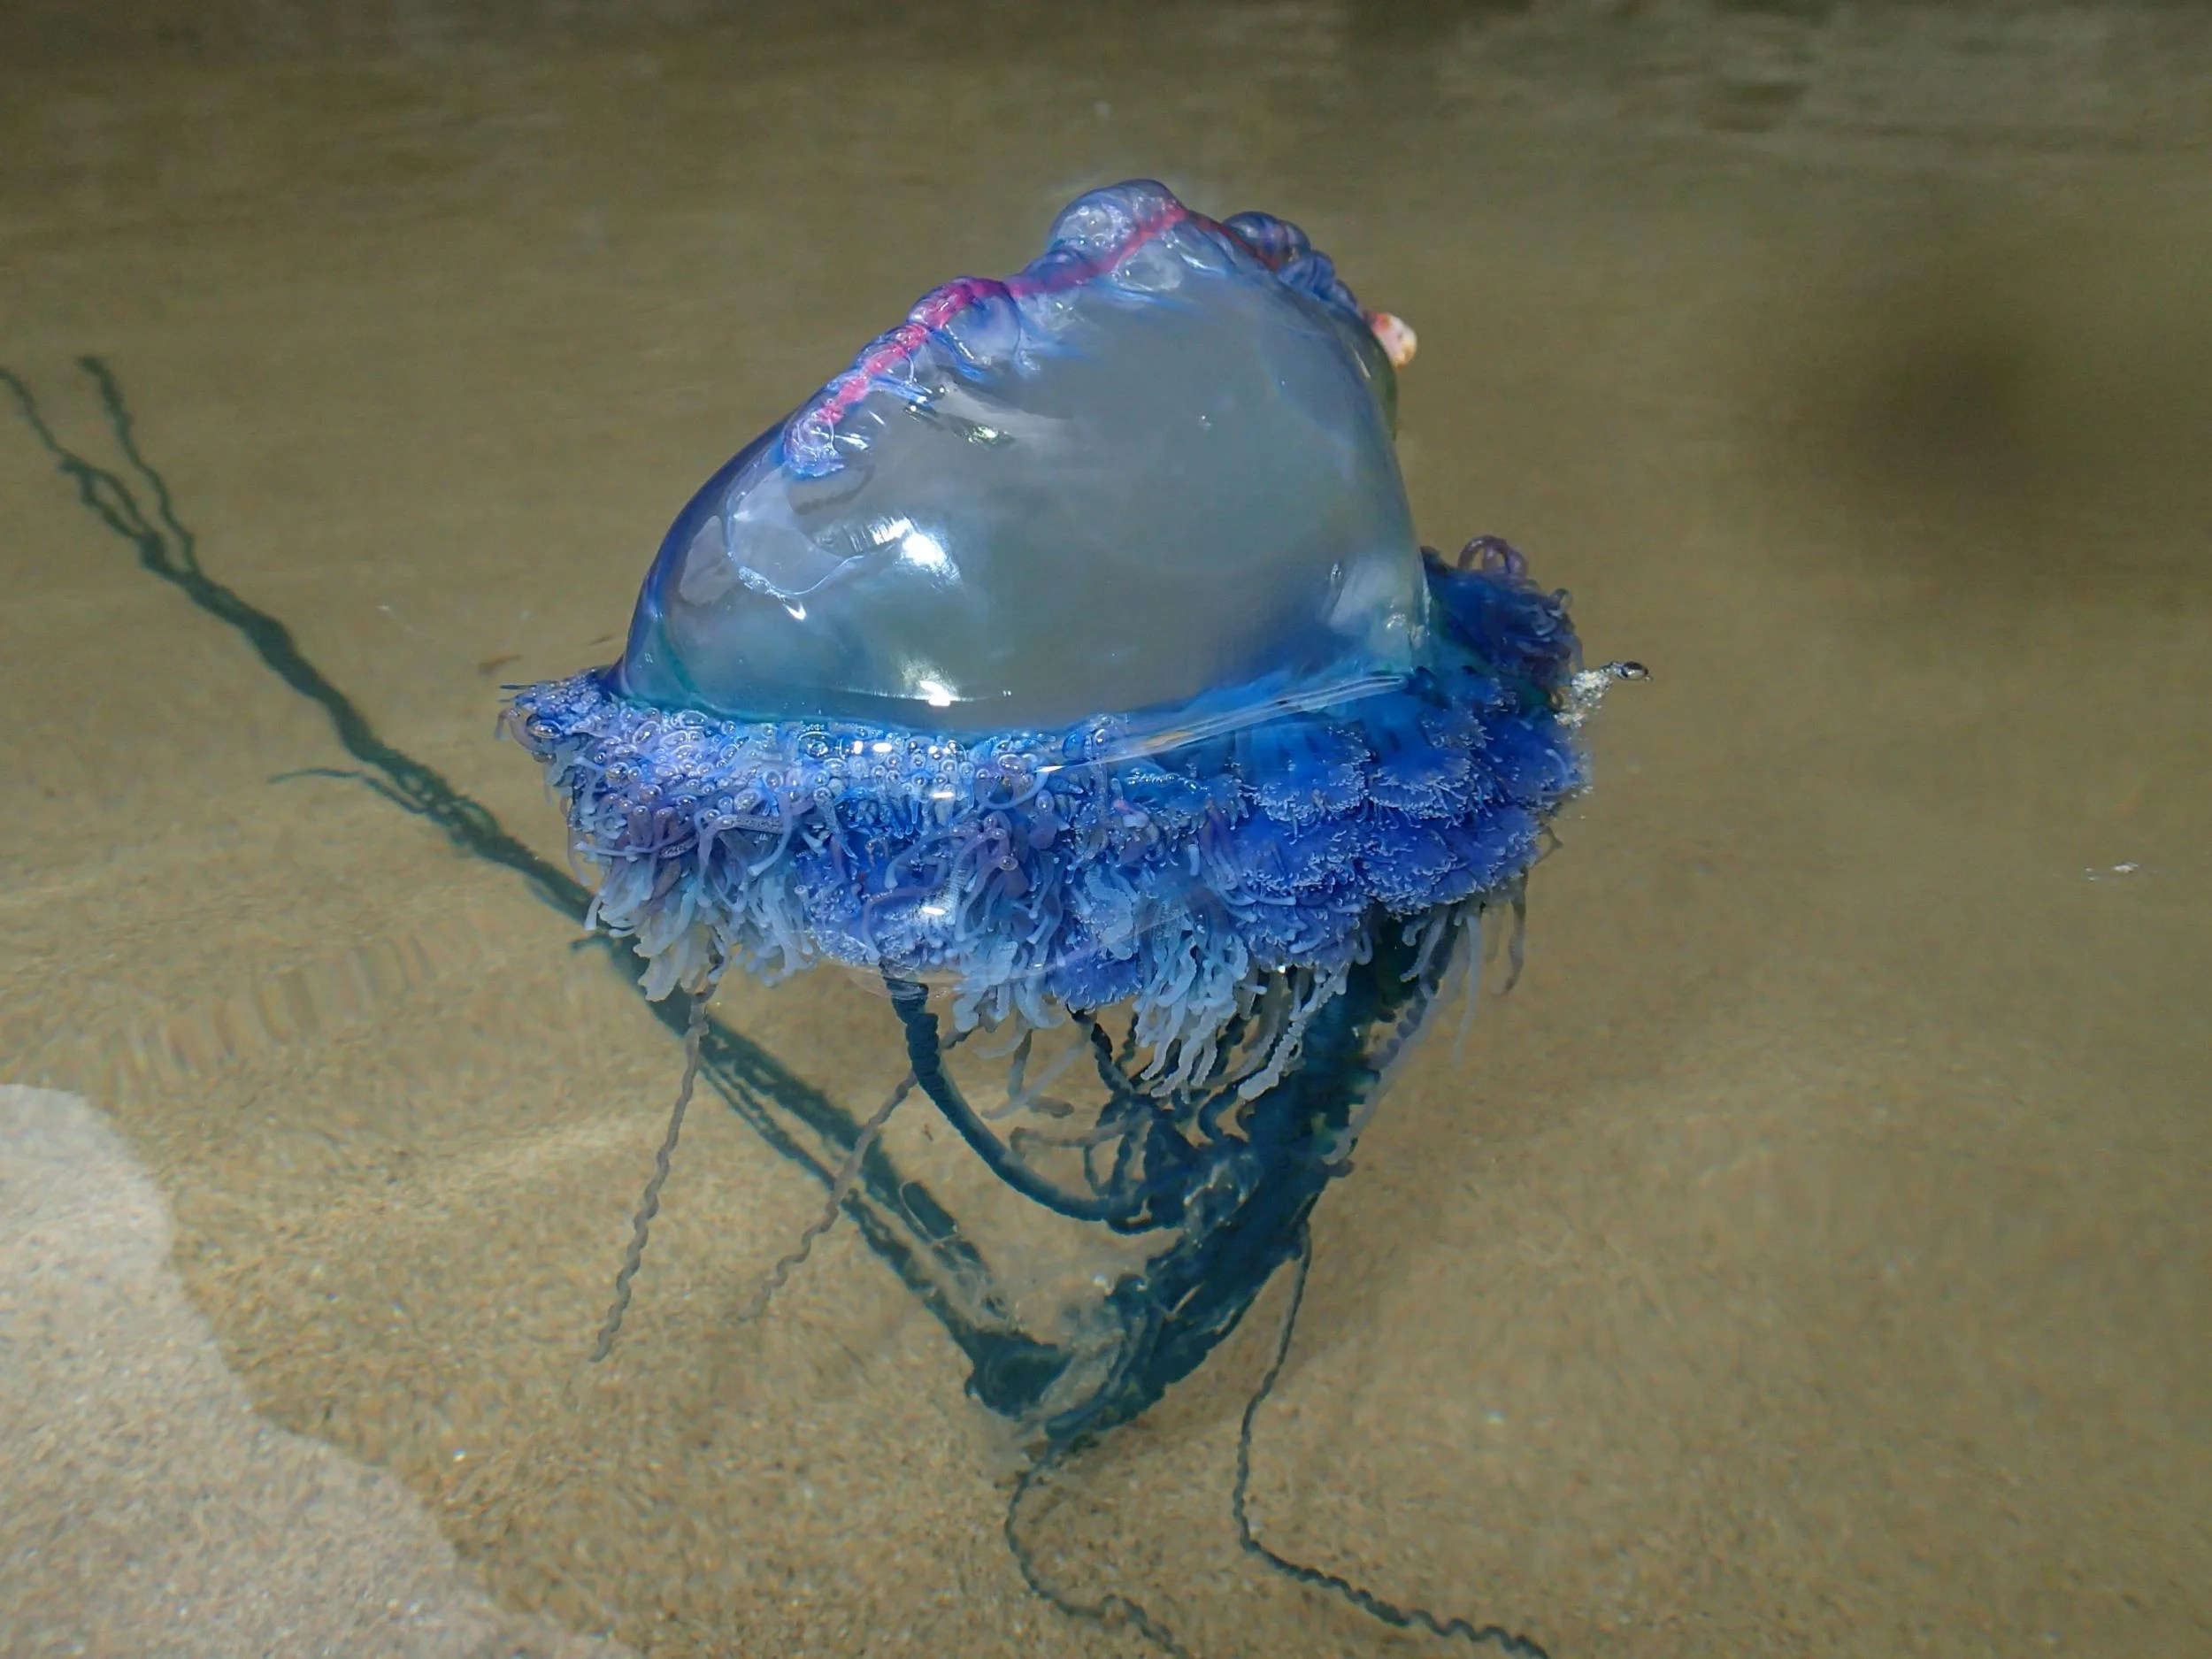 Cornish Beach On Alert After Terrifying Portuguese Man O